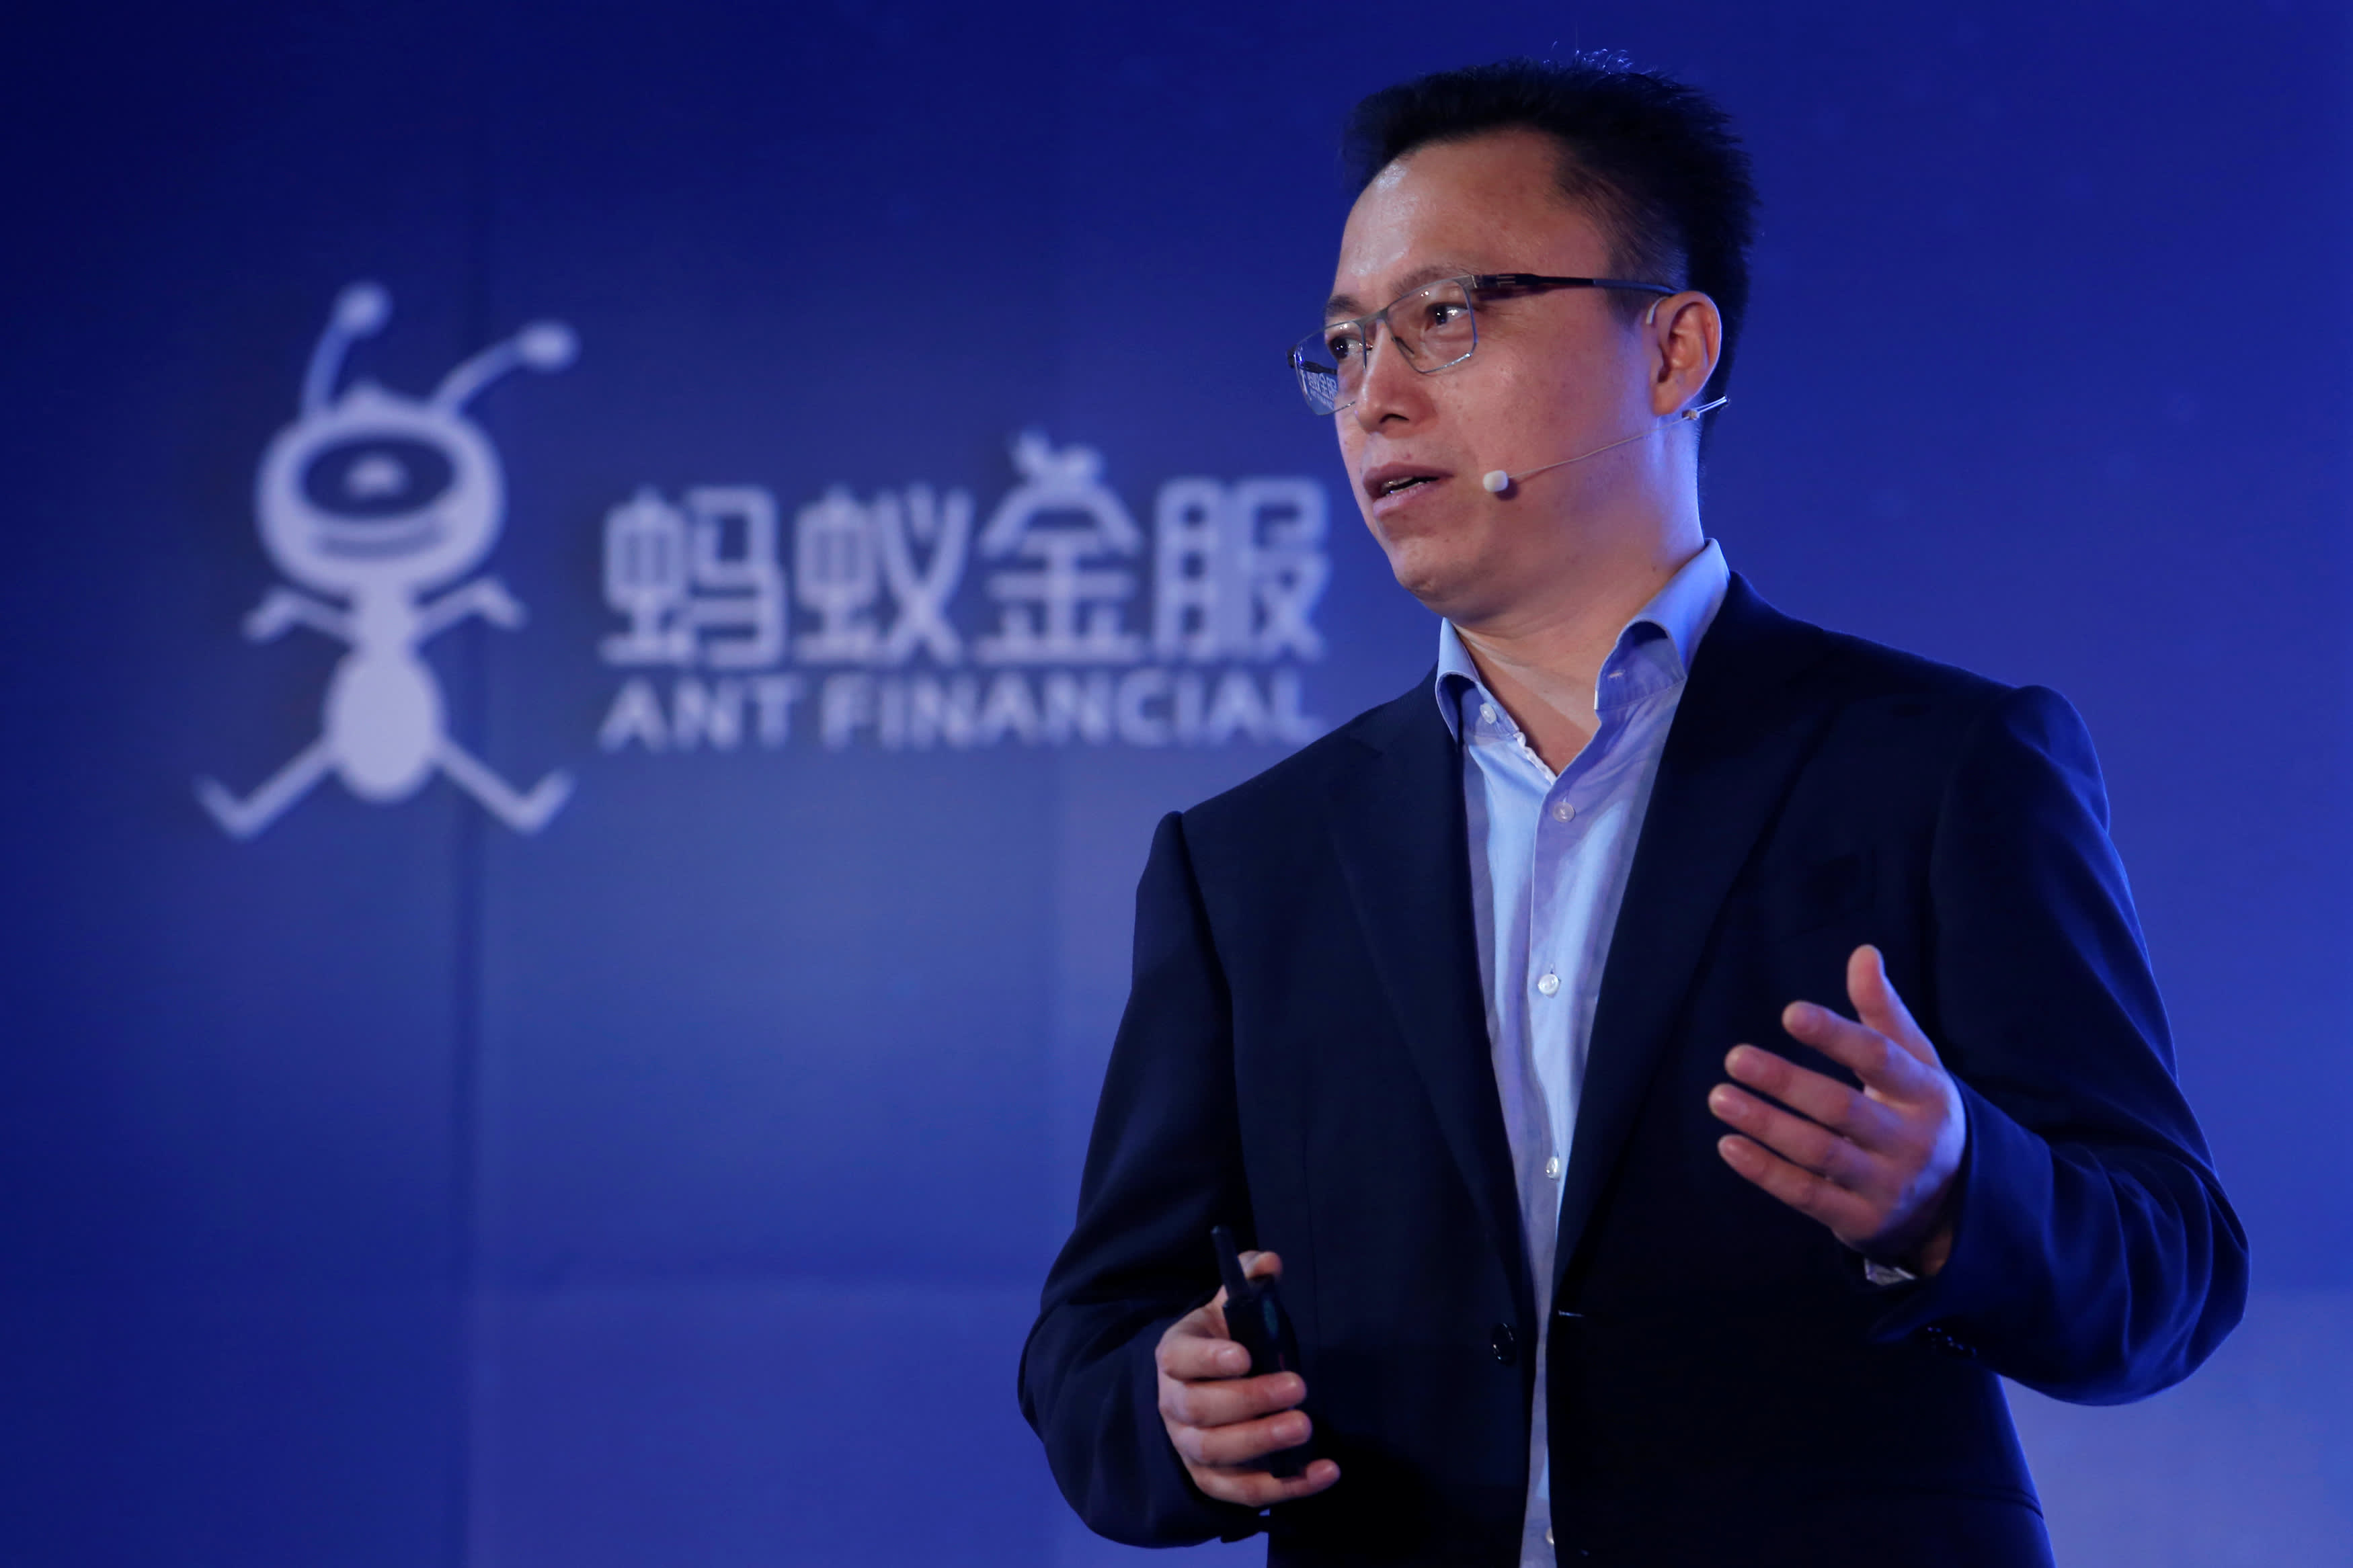 China's Ant to go public in dual Shanghai-Hong Kong listing – CNBC